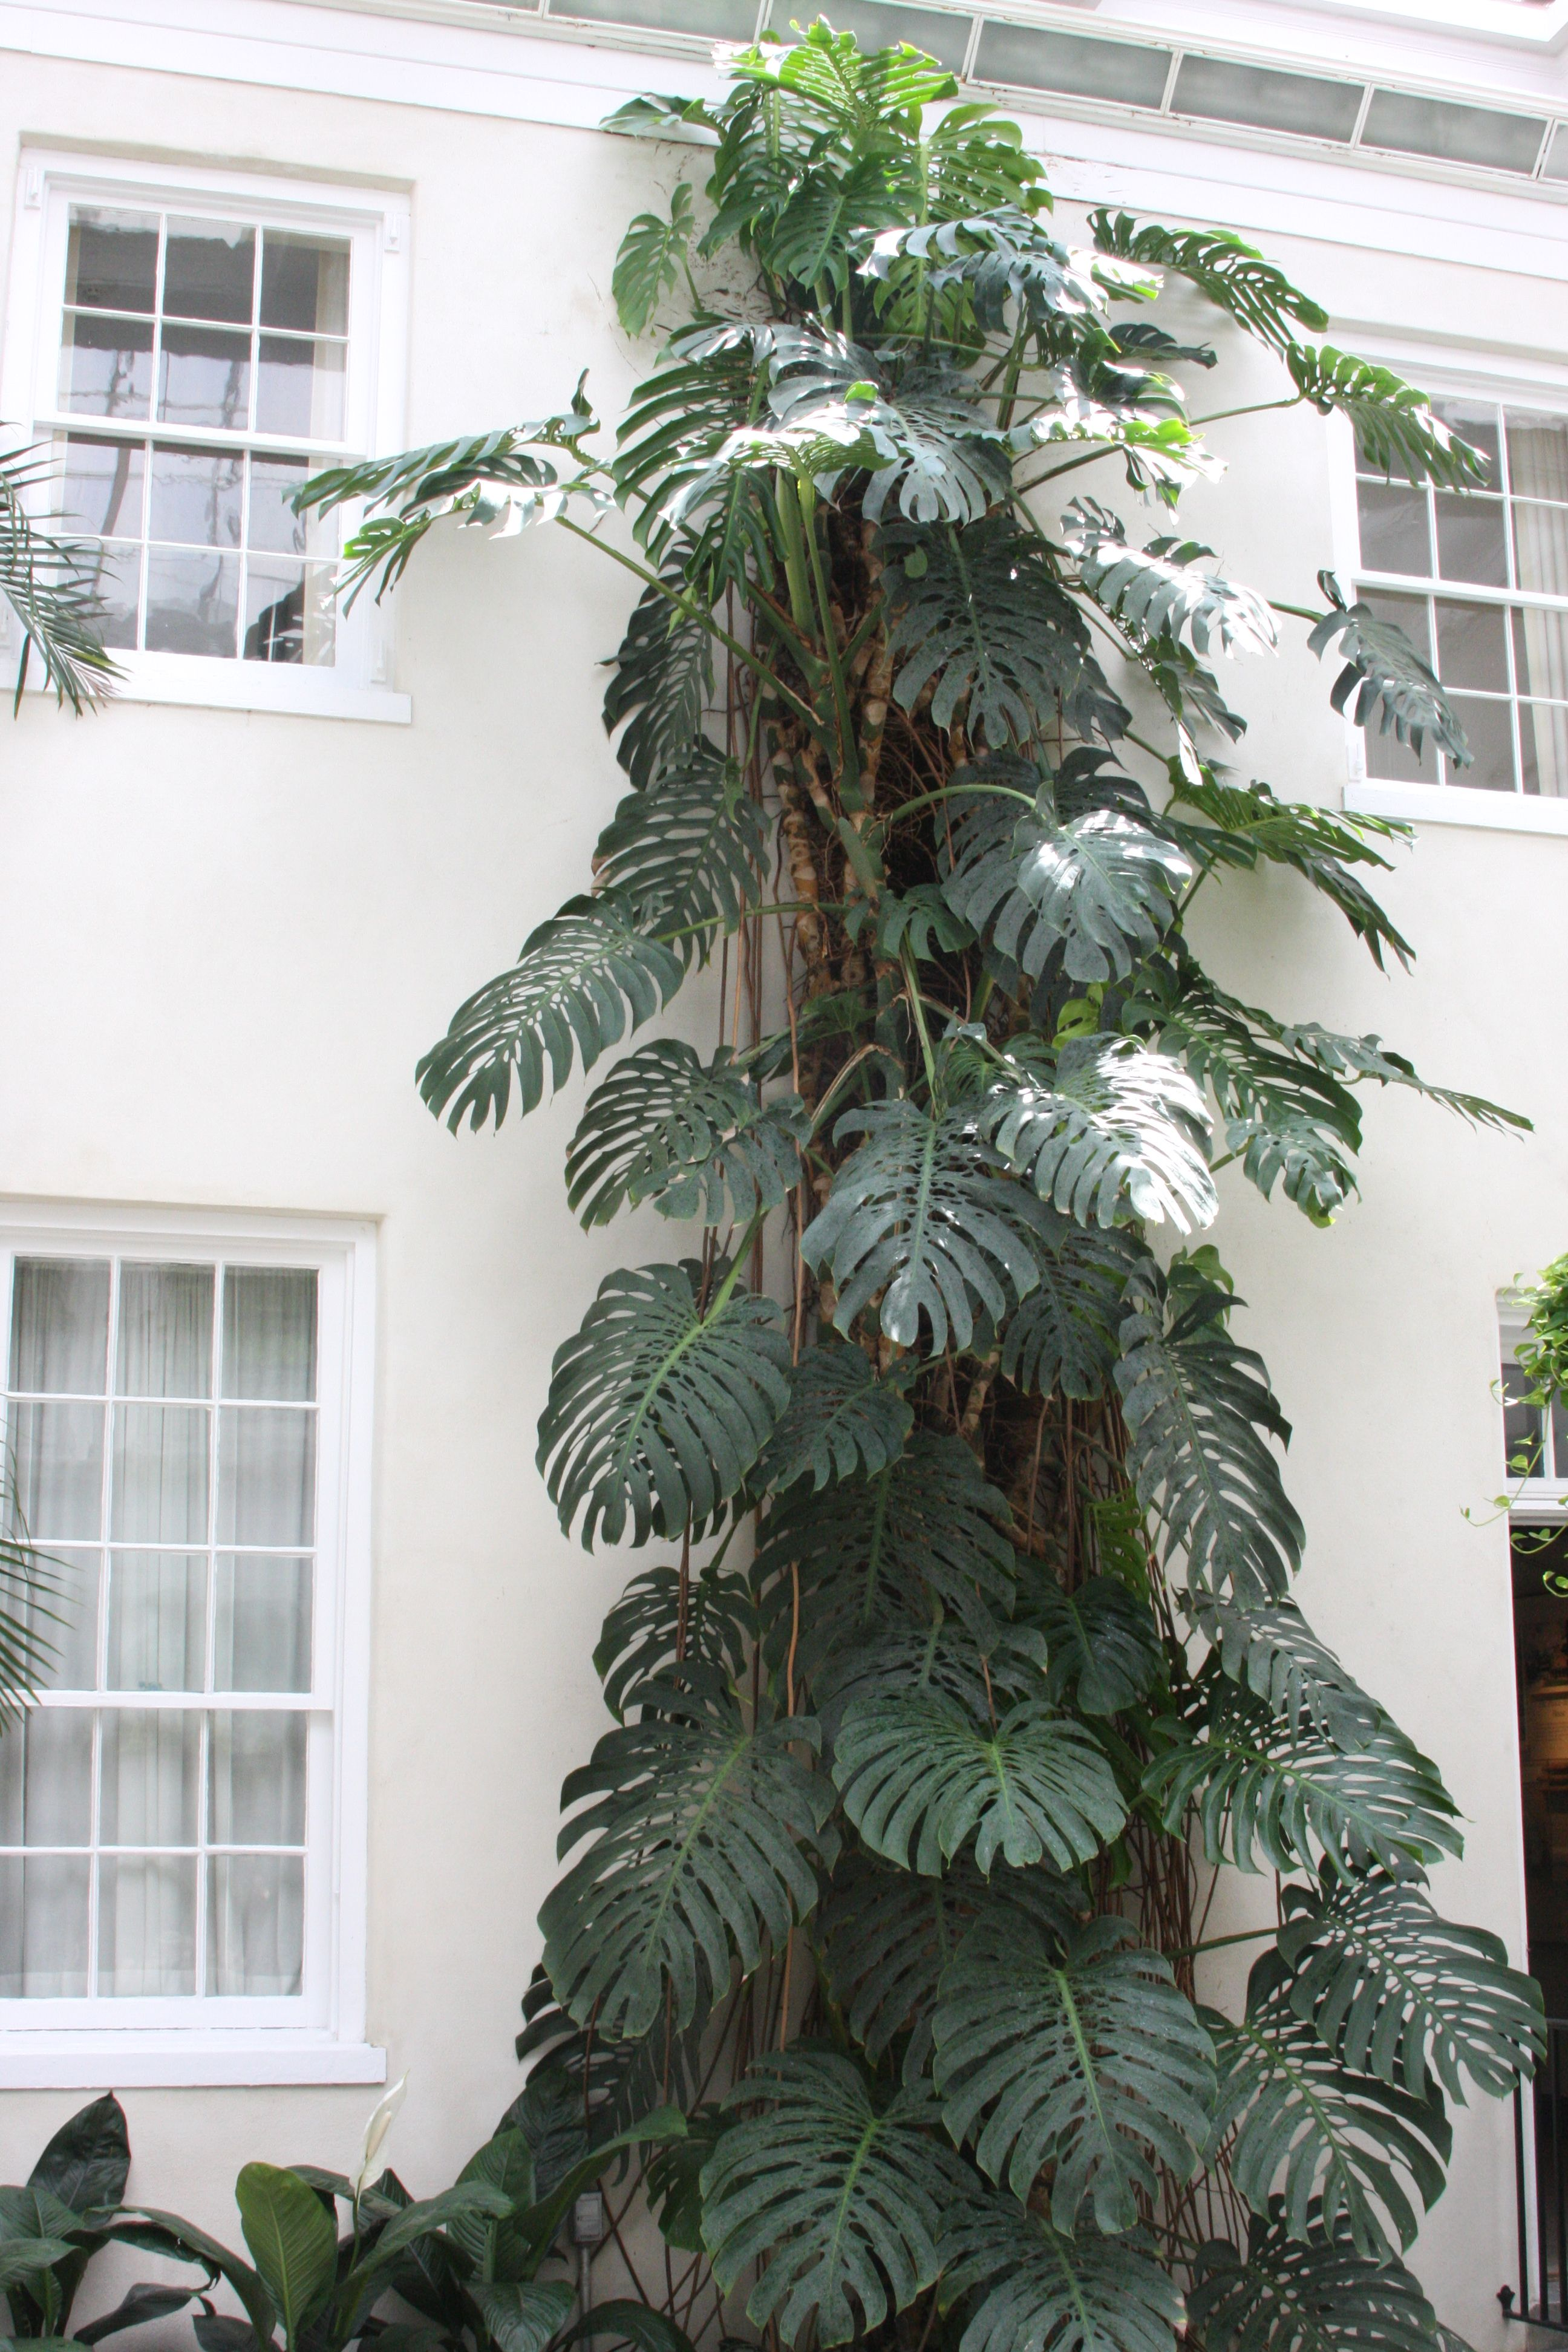 monstera deliciosa swiss cheese plant longwood gardens se pennsylvania flowers and plants. Black Bedroom Furniture Sets. Home Design Ideas